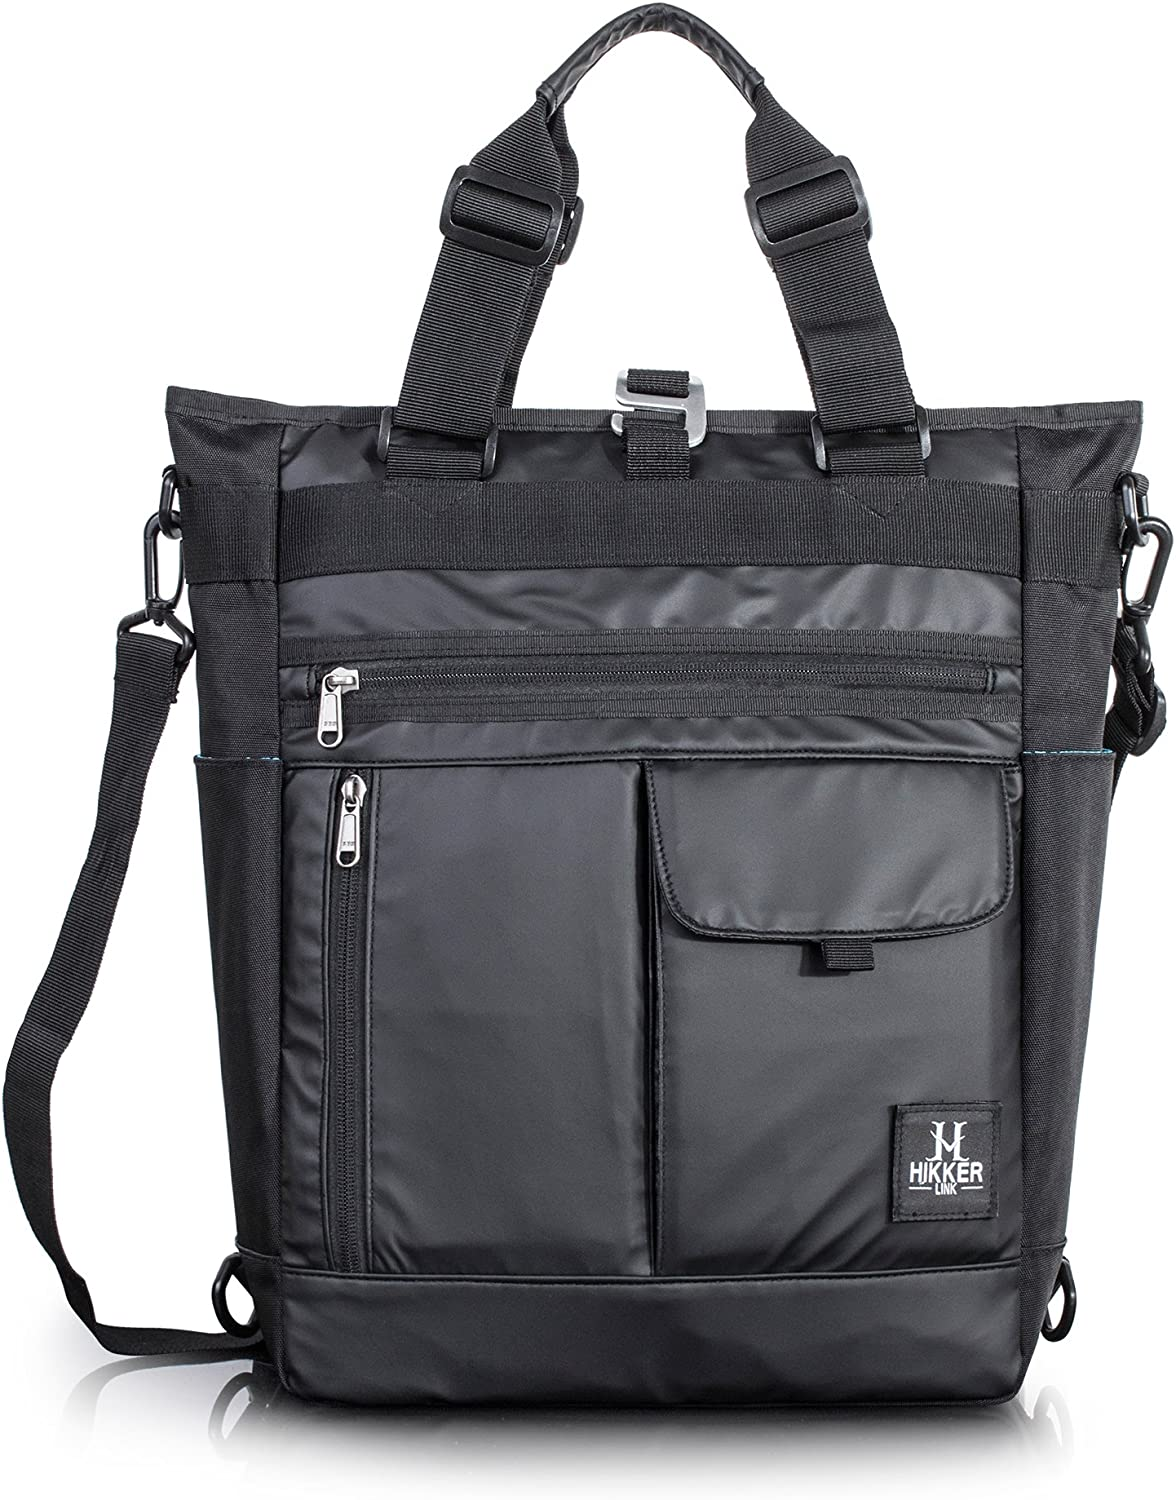 Amazon Promo Code 2020 for Shoulder Bag for Men